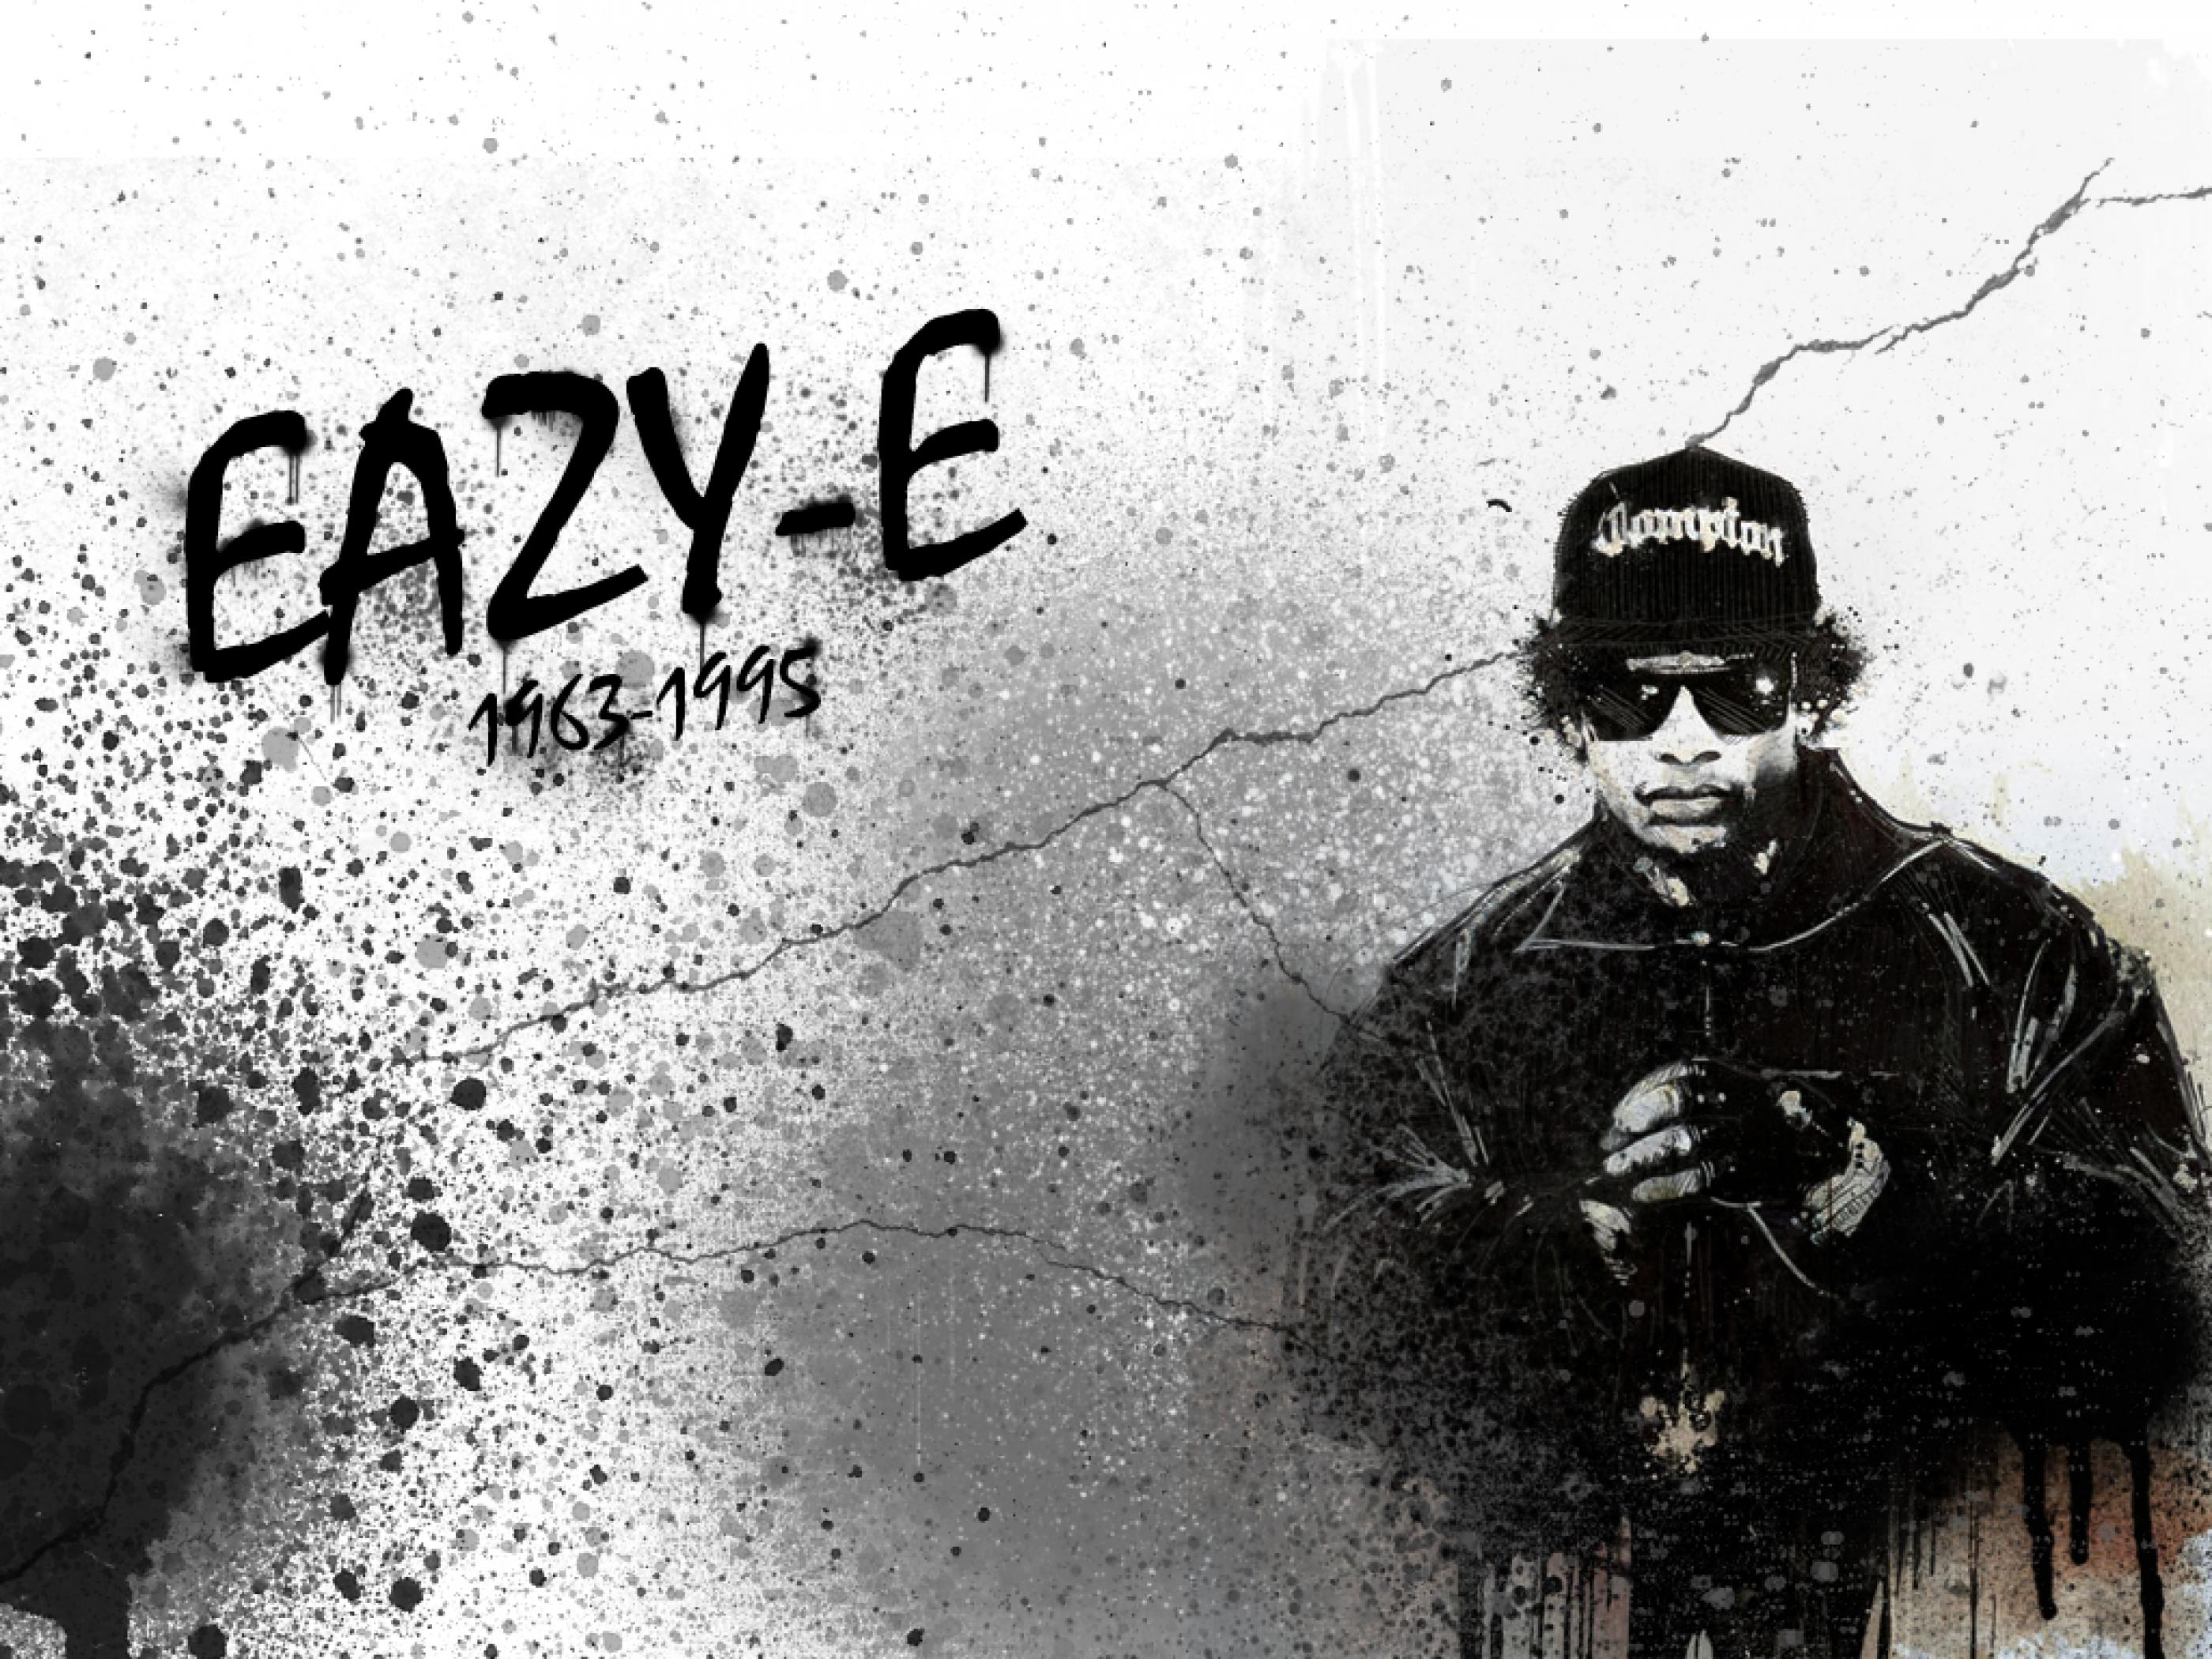 Eazy E Wallpapers 53BN18R 063 Mb   4USkY 2800x2100